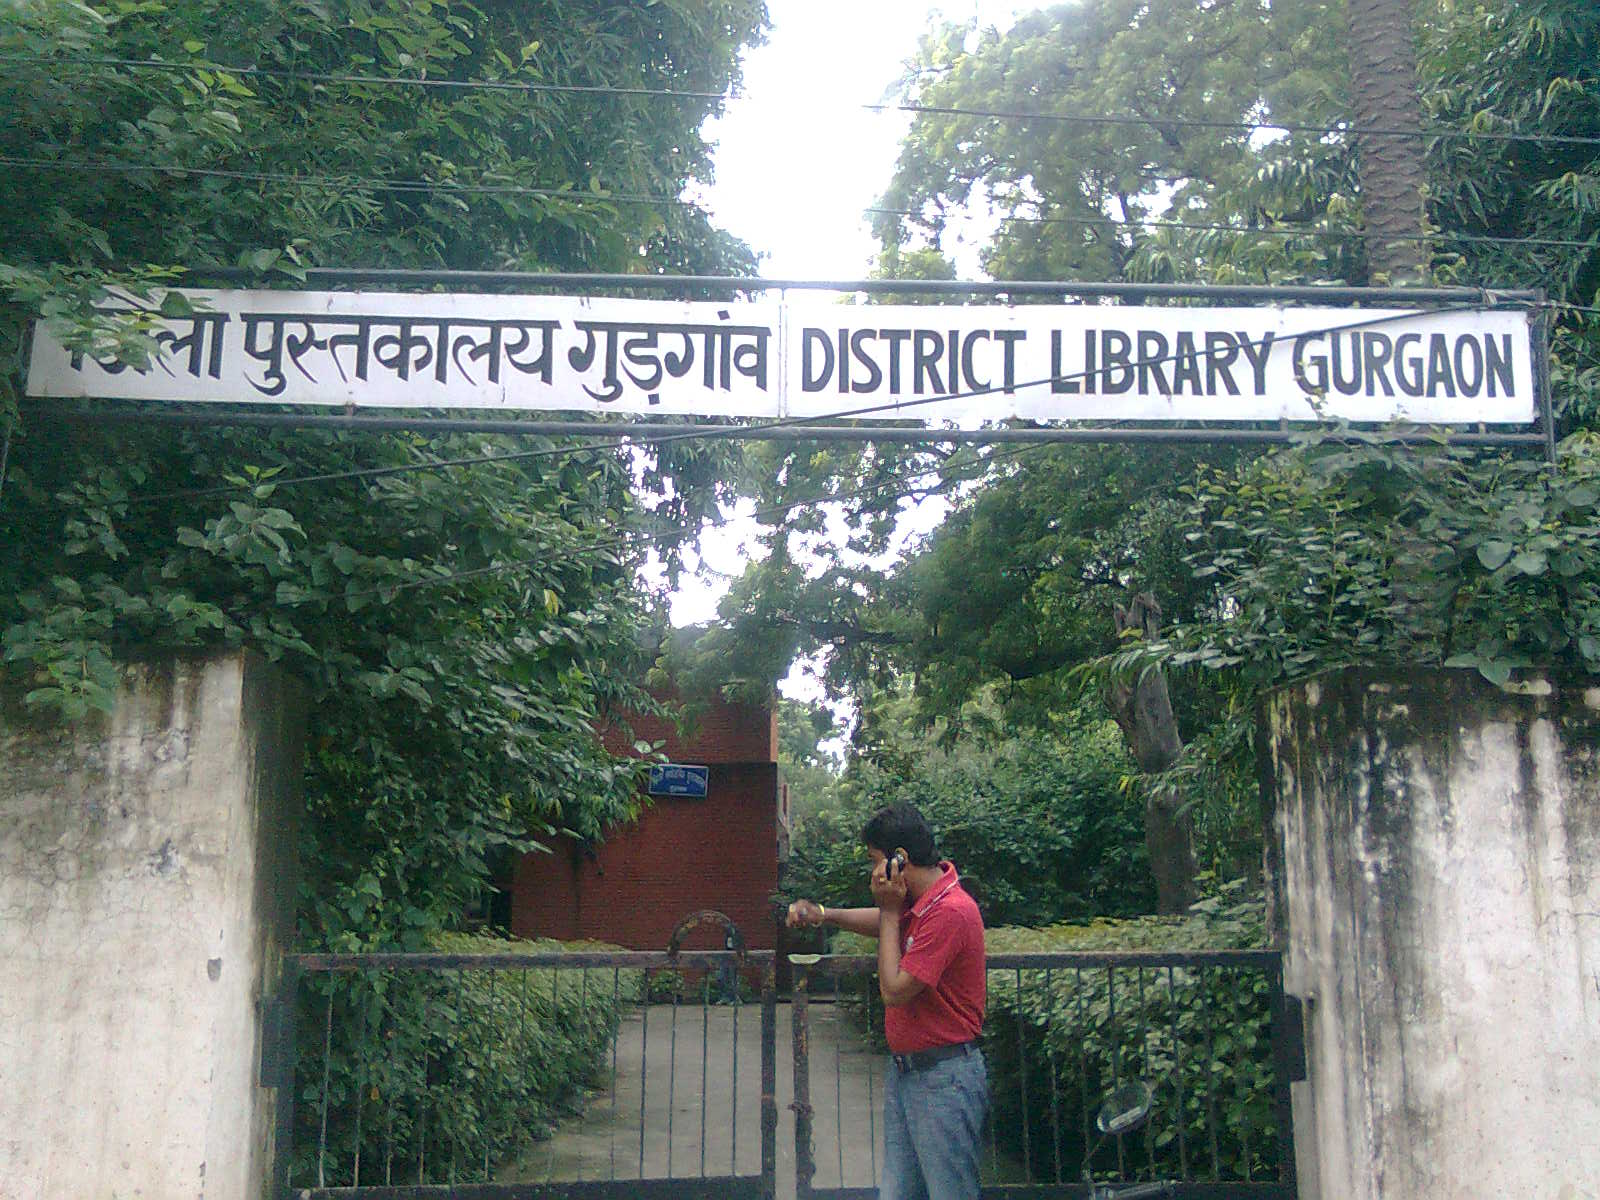 District Library Gurgaon